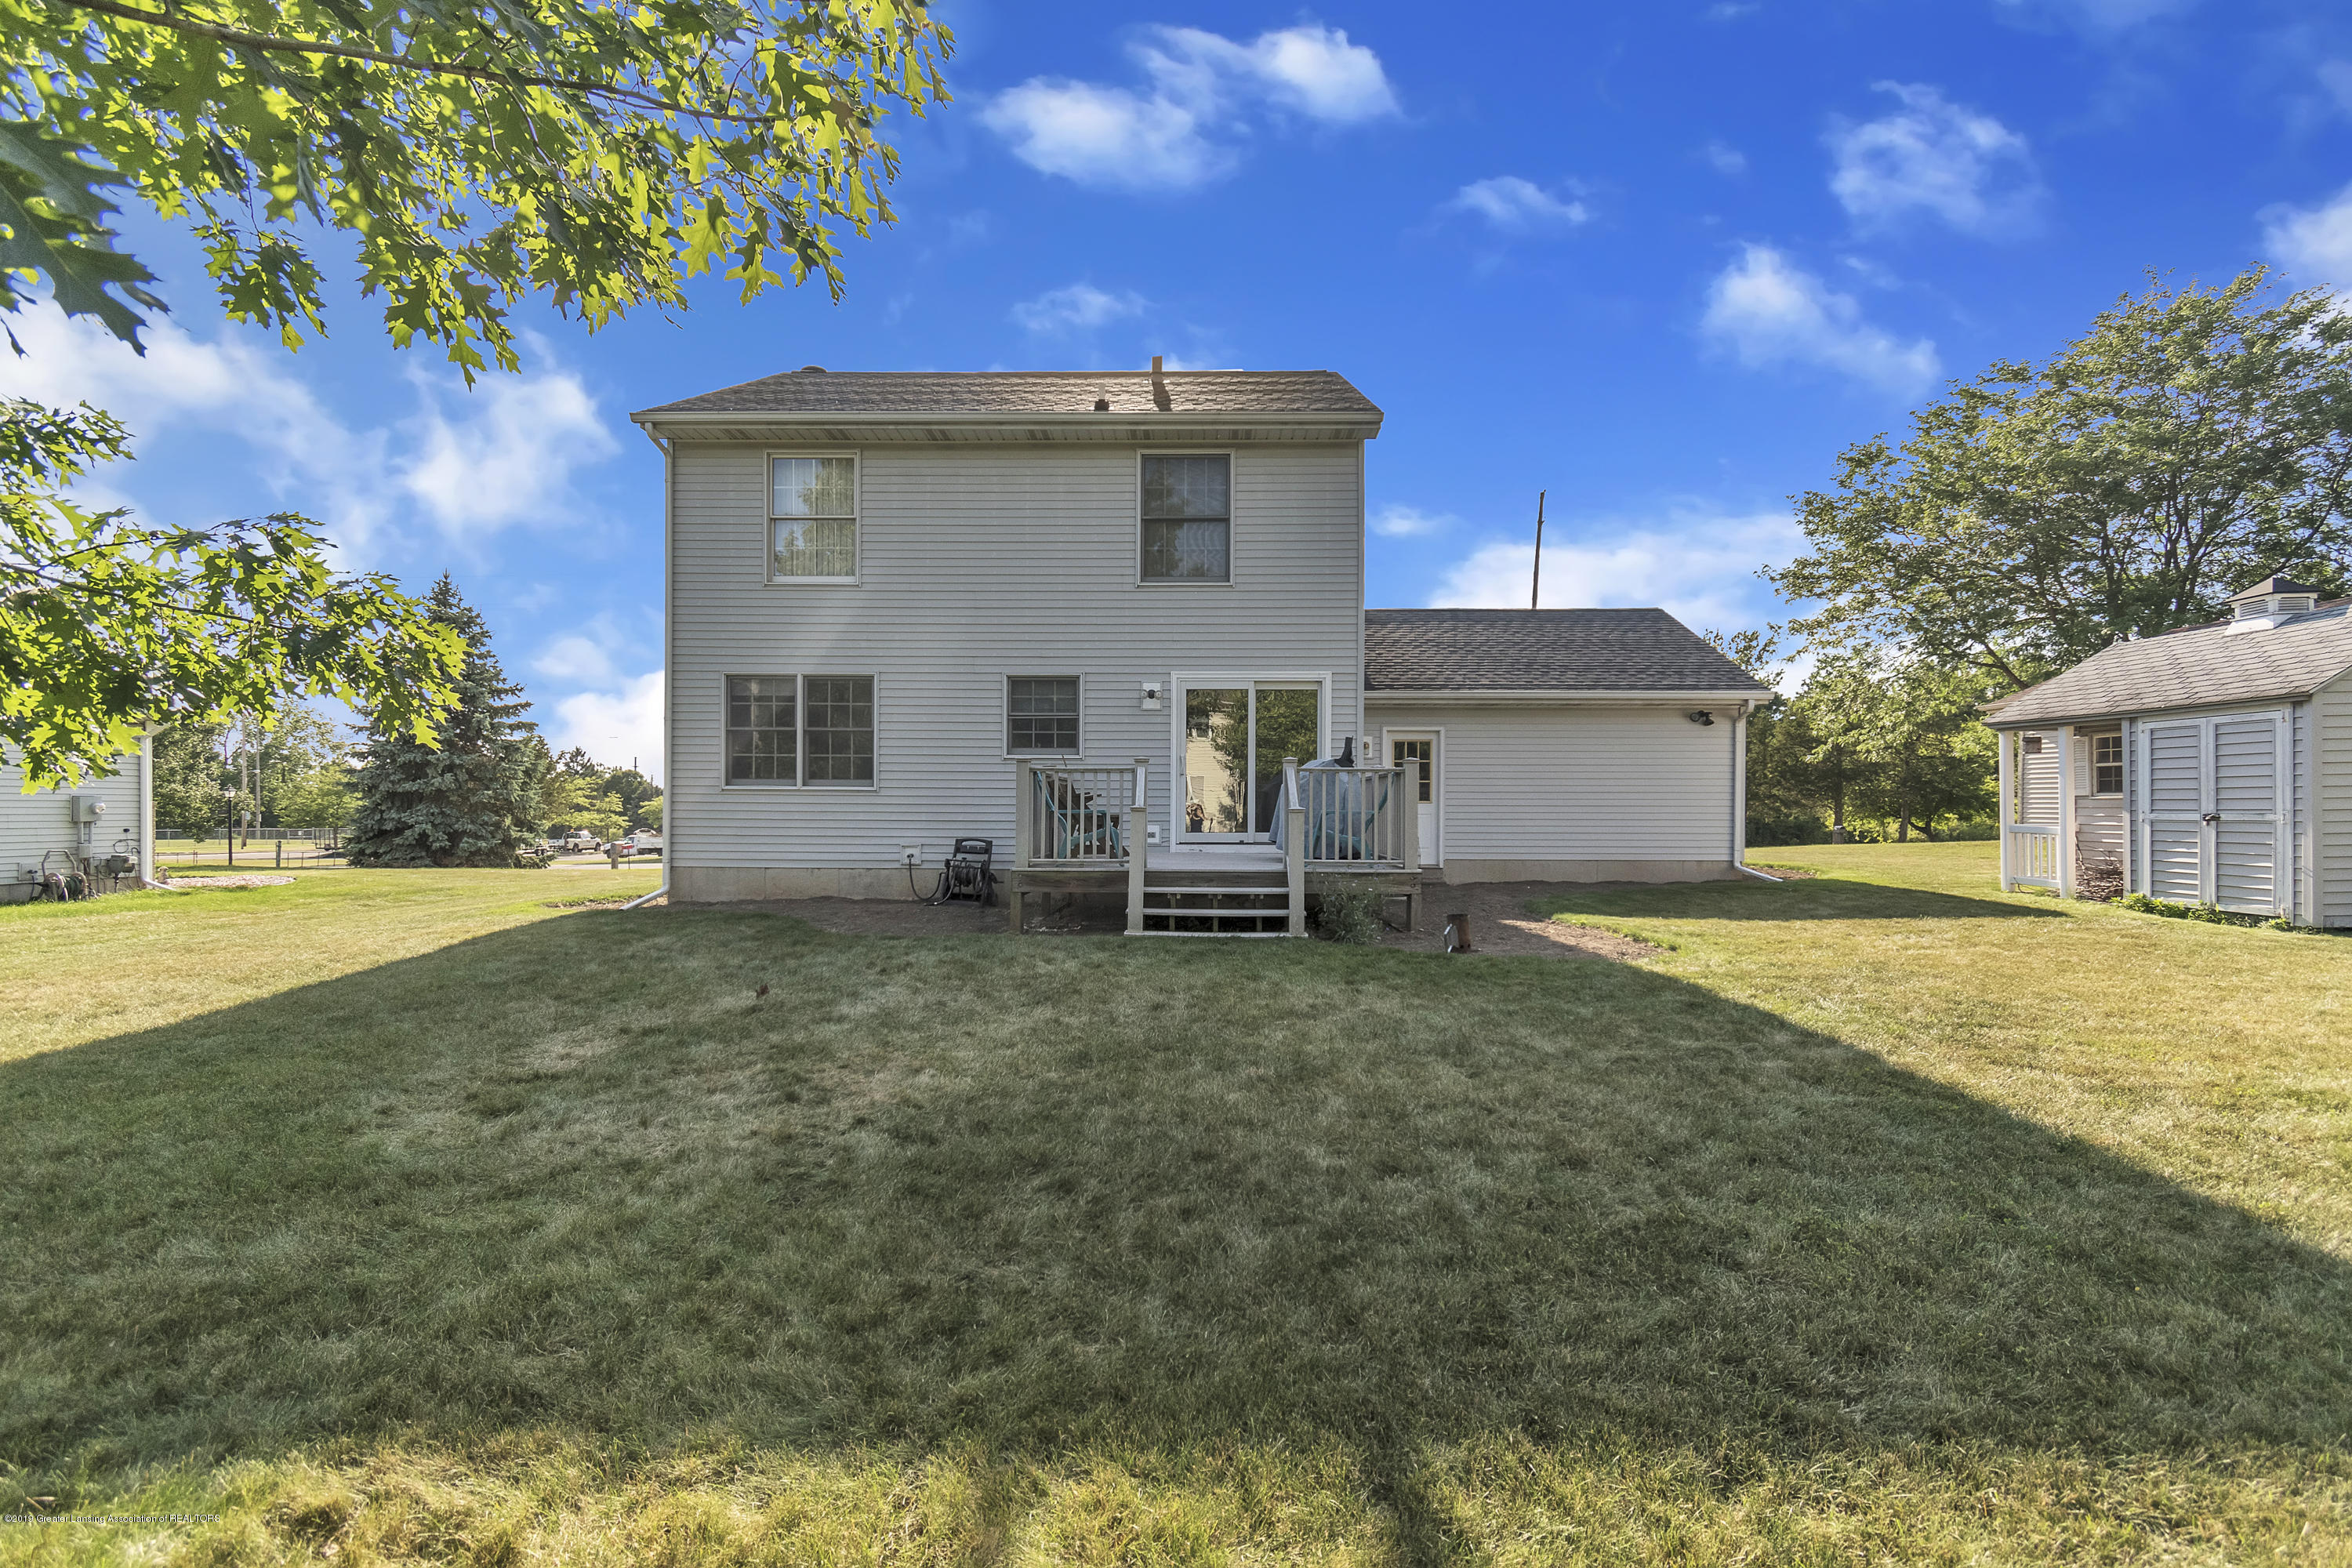 2350 Pine Tree Rd - 2350-Pine-Tree-Rd-Holt-MI-windowstill-38 - 33